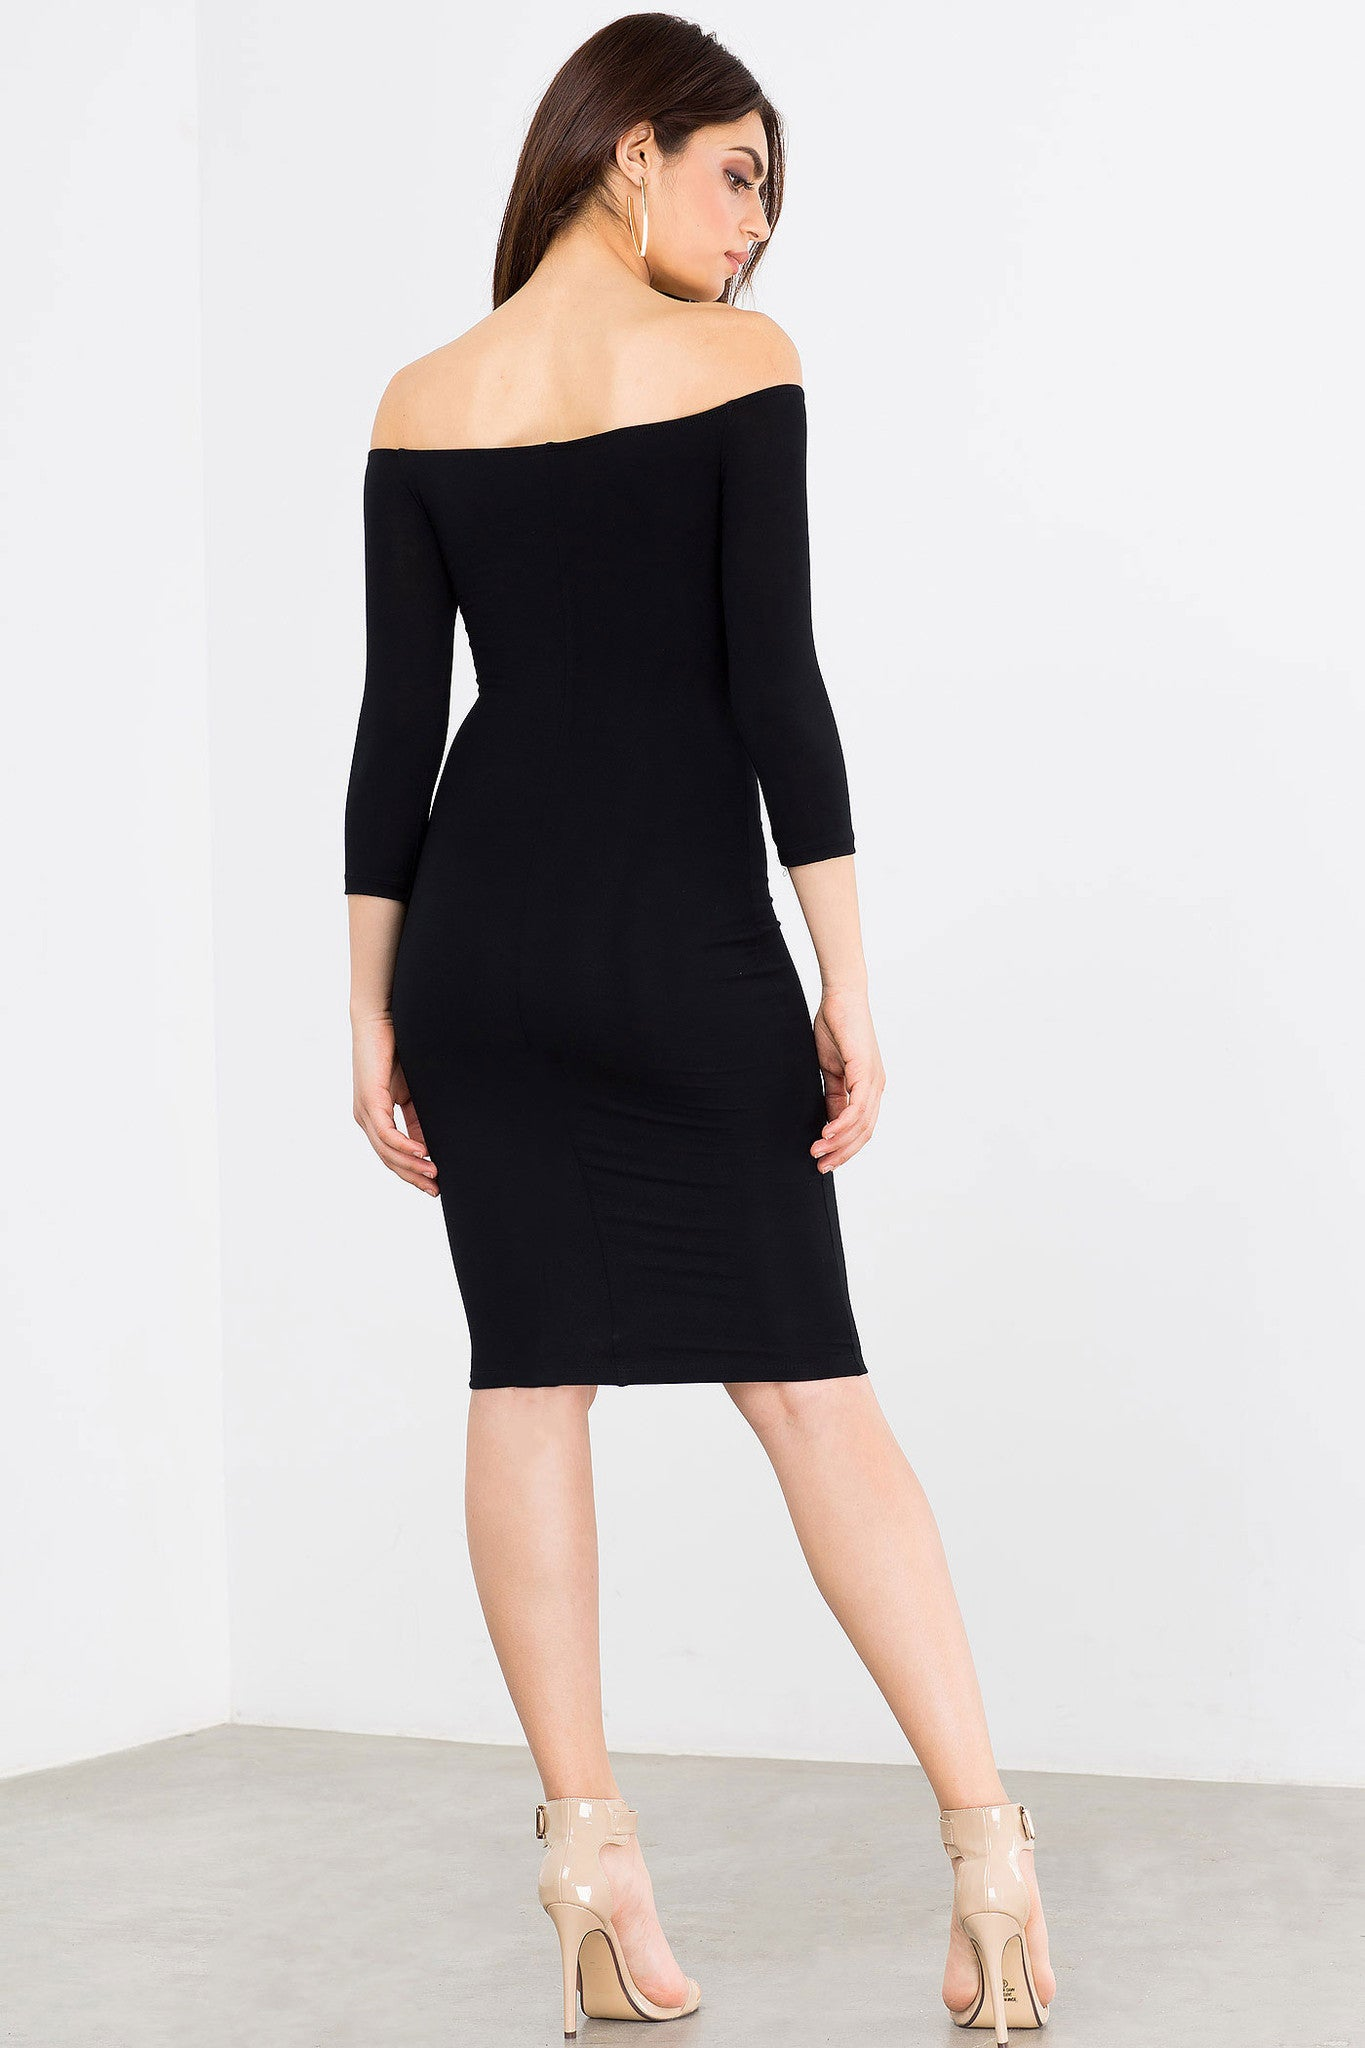 Black dress off the shoulder jersey